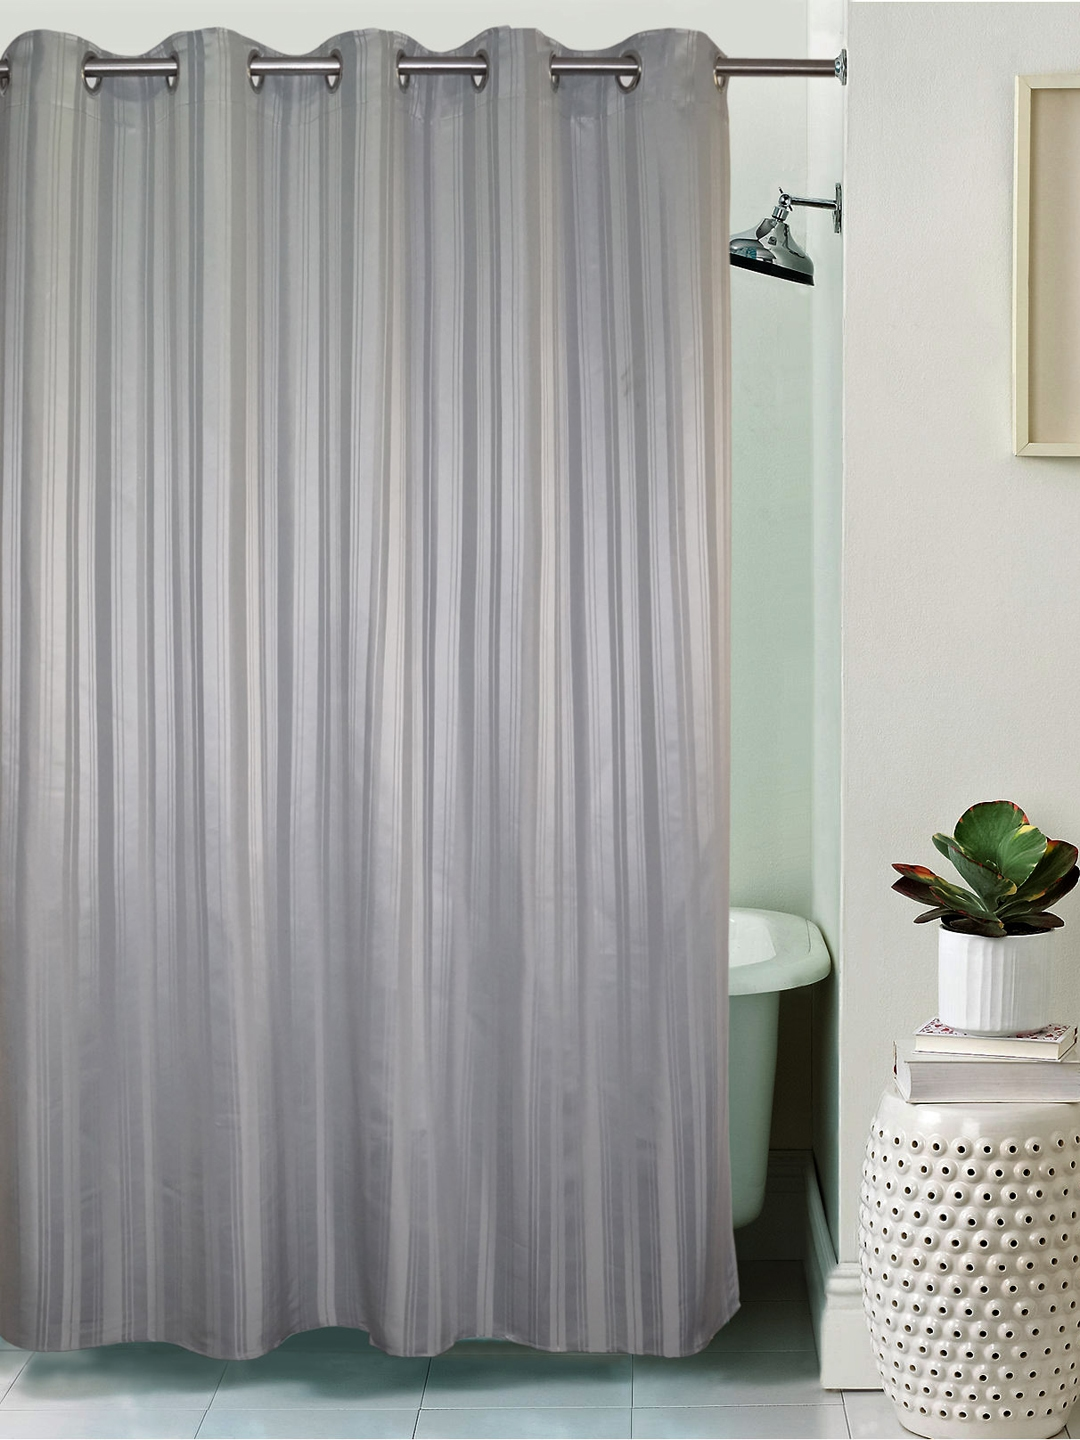 Lushomes Striped Grey Polyester Shower Curtain